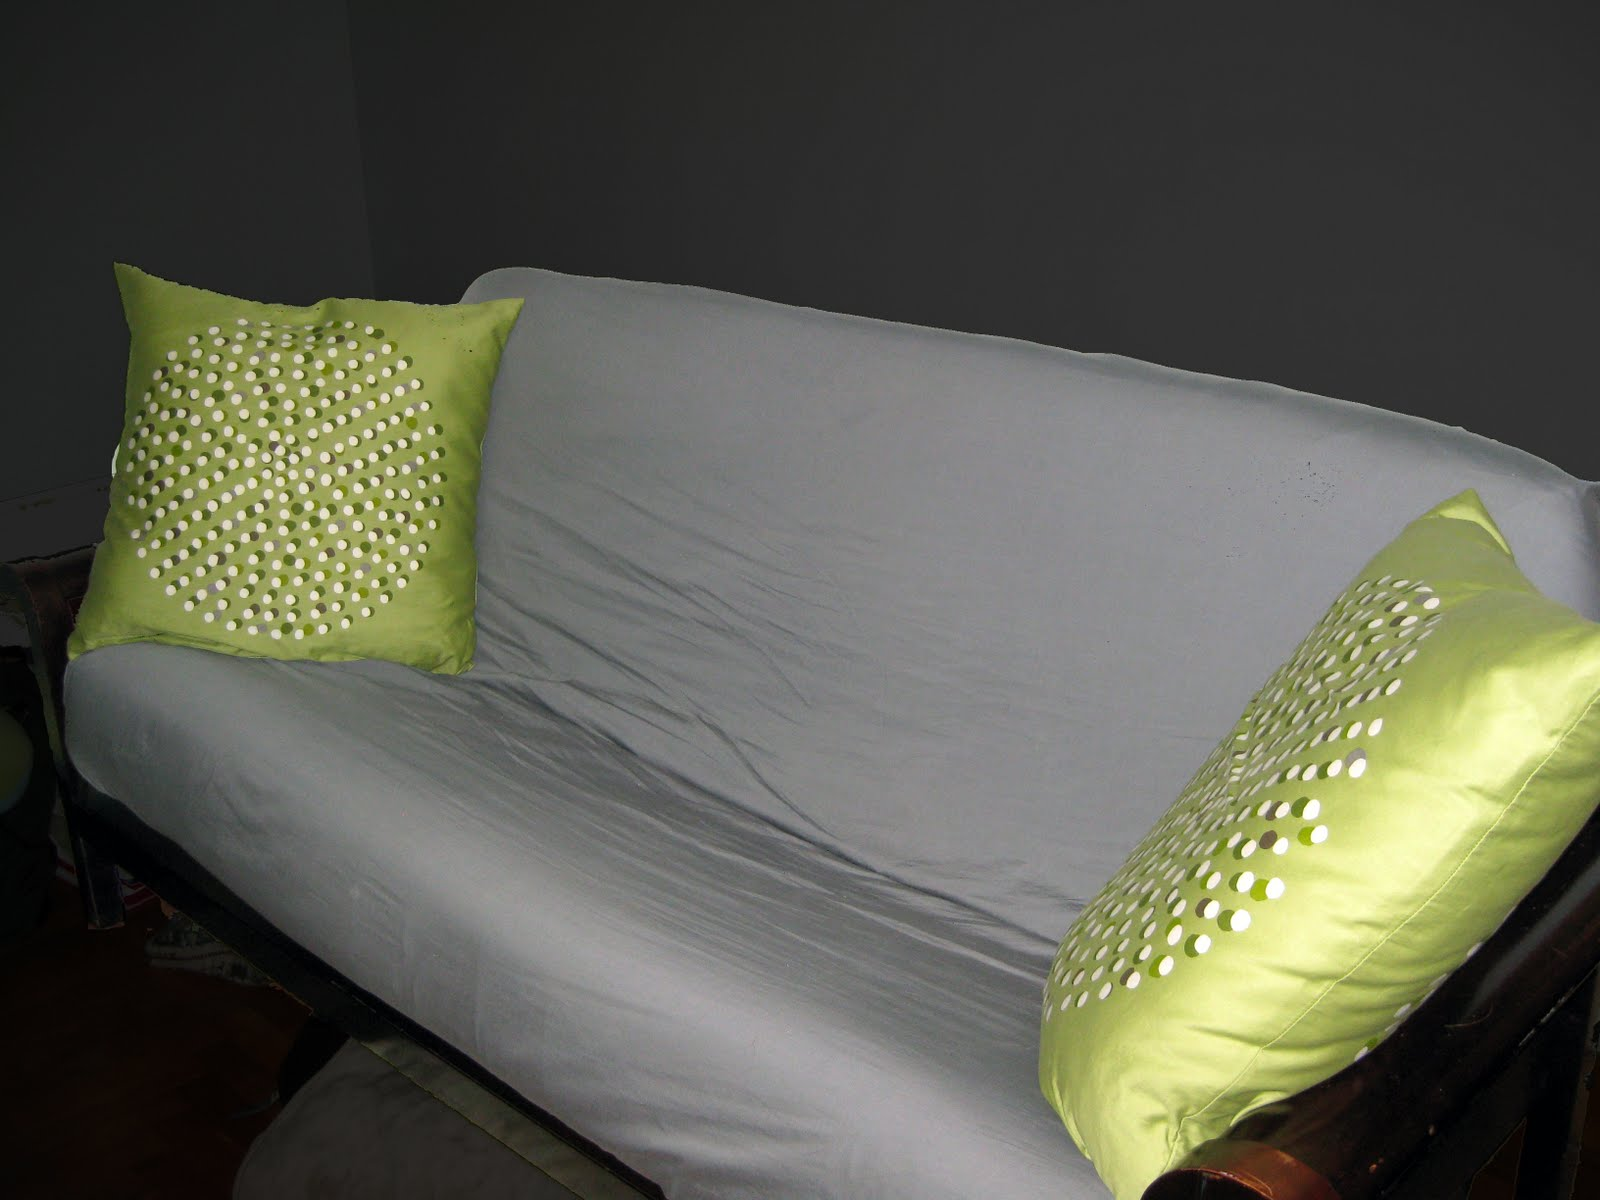 the full sheet futon cover cleverly simple recipes diy from how to sew a futon cover   roselawnlutheran  rh   roselawnlutheran org